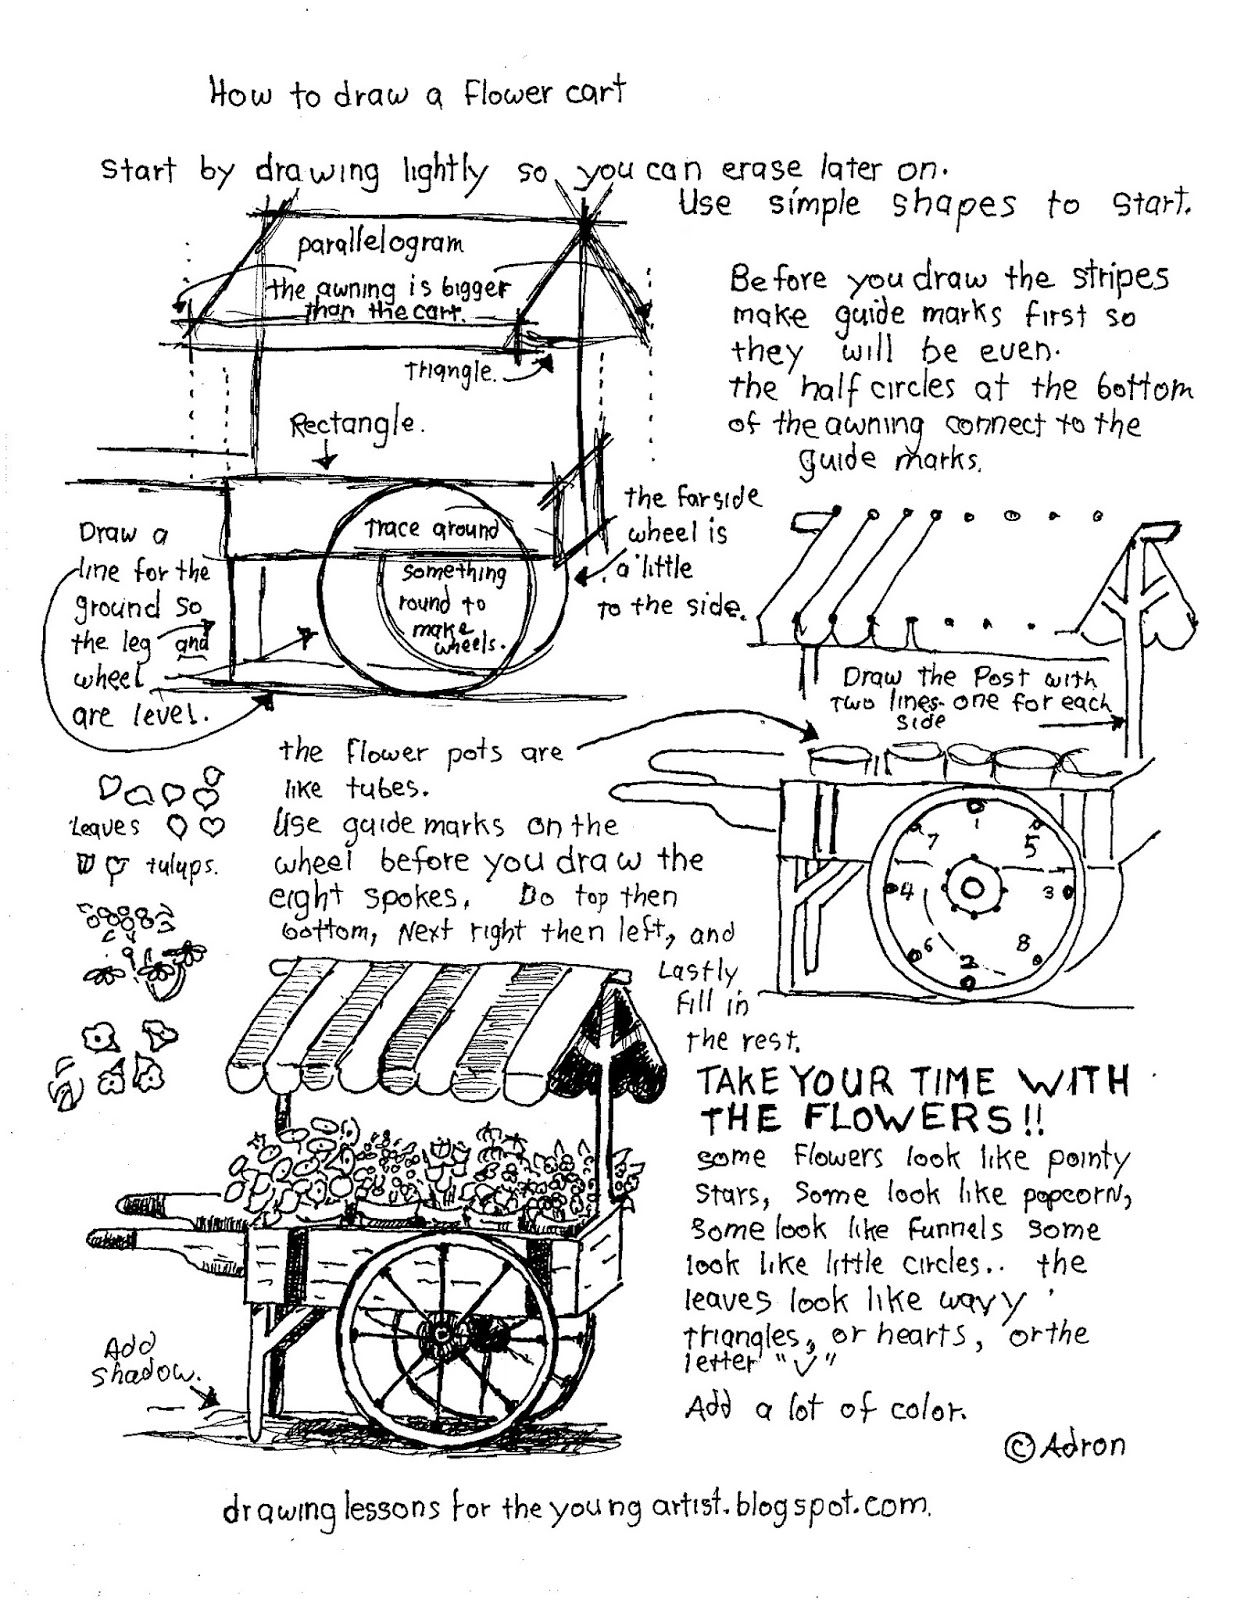 How To Draw Worksheets For The Young Artist How To Draw A Flower Cart Printable Worksheet